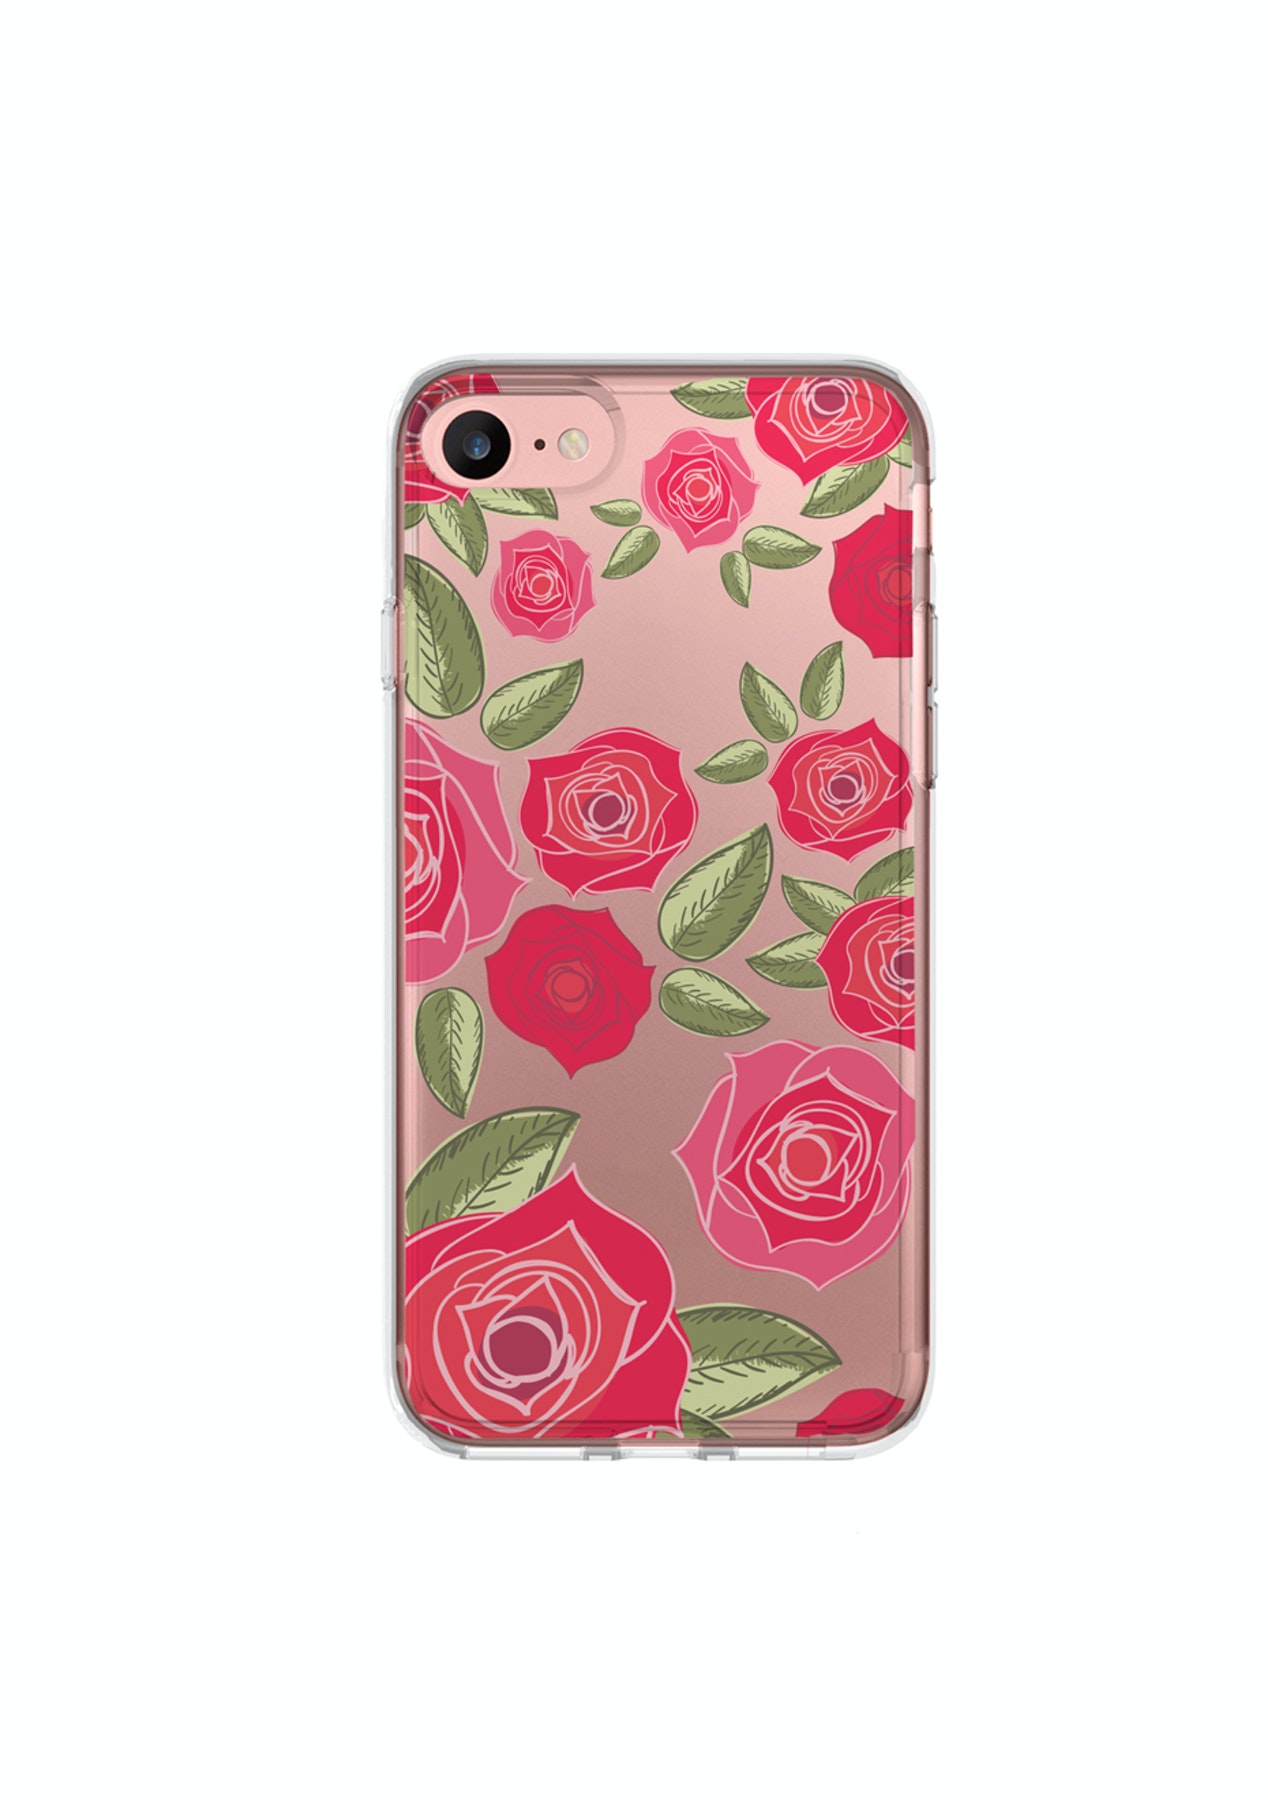 27ce14f7184 Smaak™ Mode iPhone 7 Fashion Case- Red Rose - Accessories for Apple & More  - Onceit